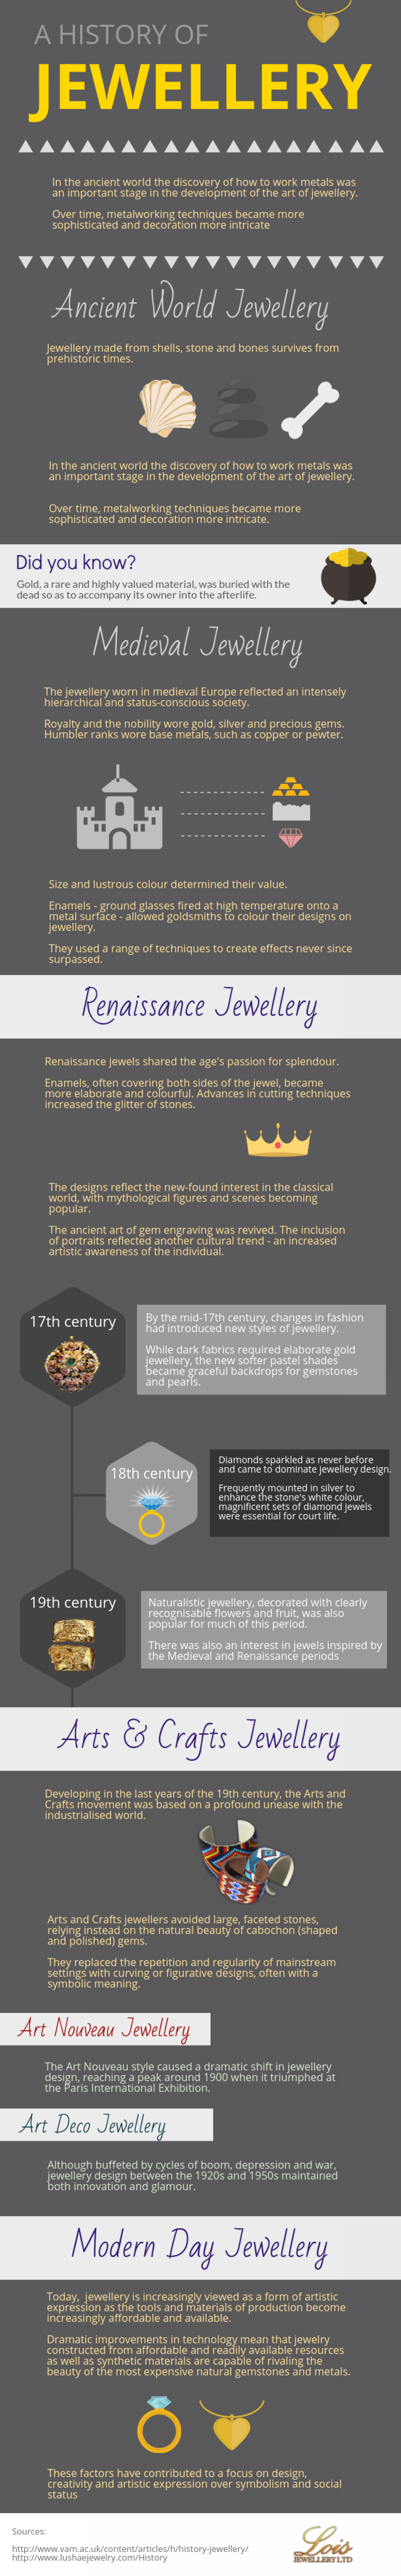 A History Of Jewellery Infographic